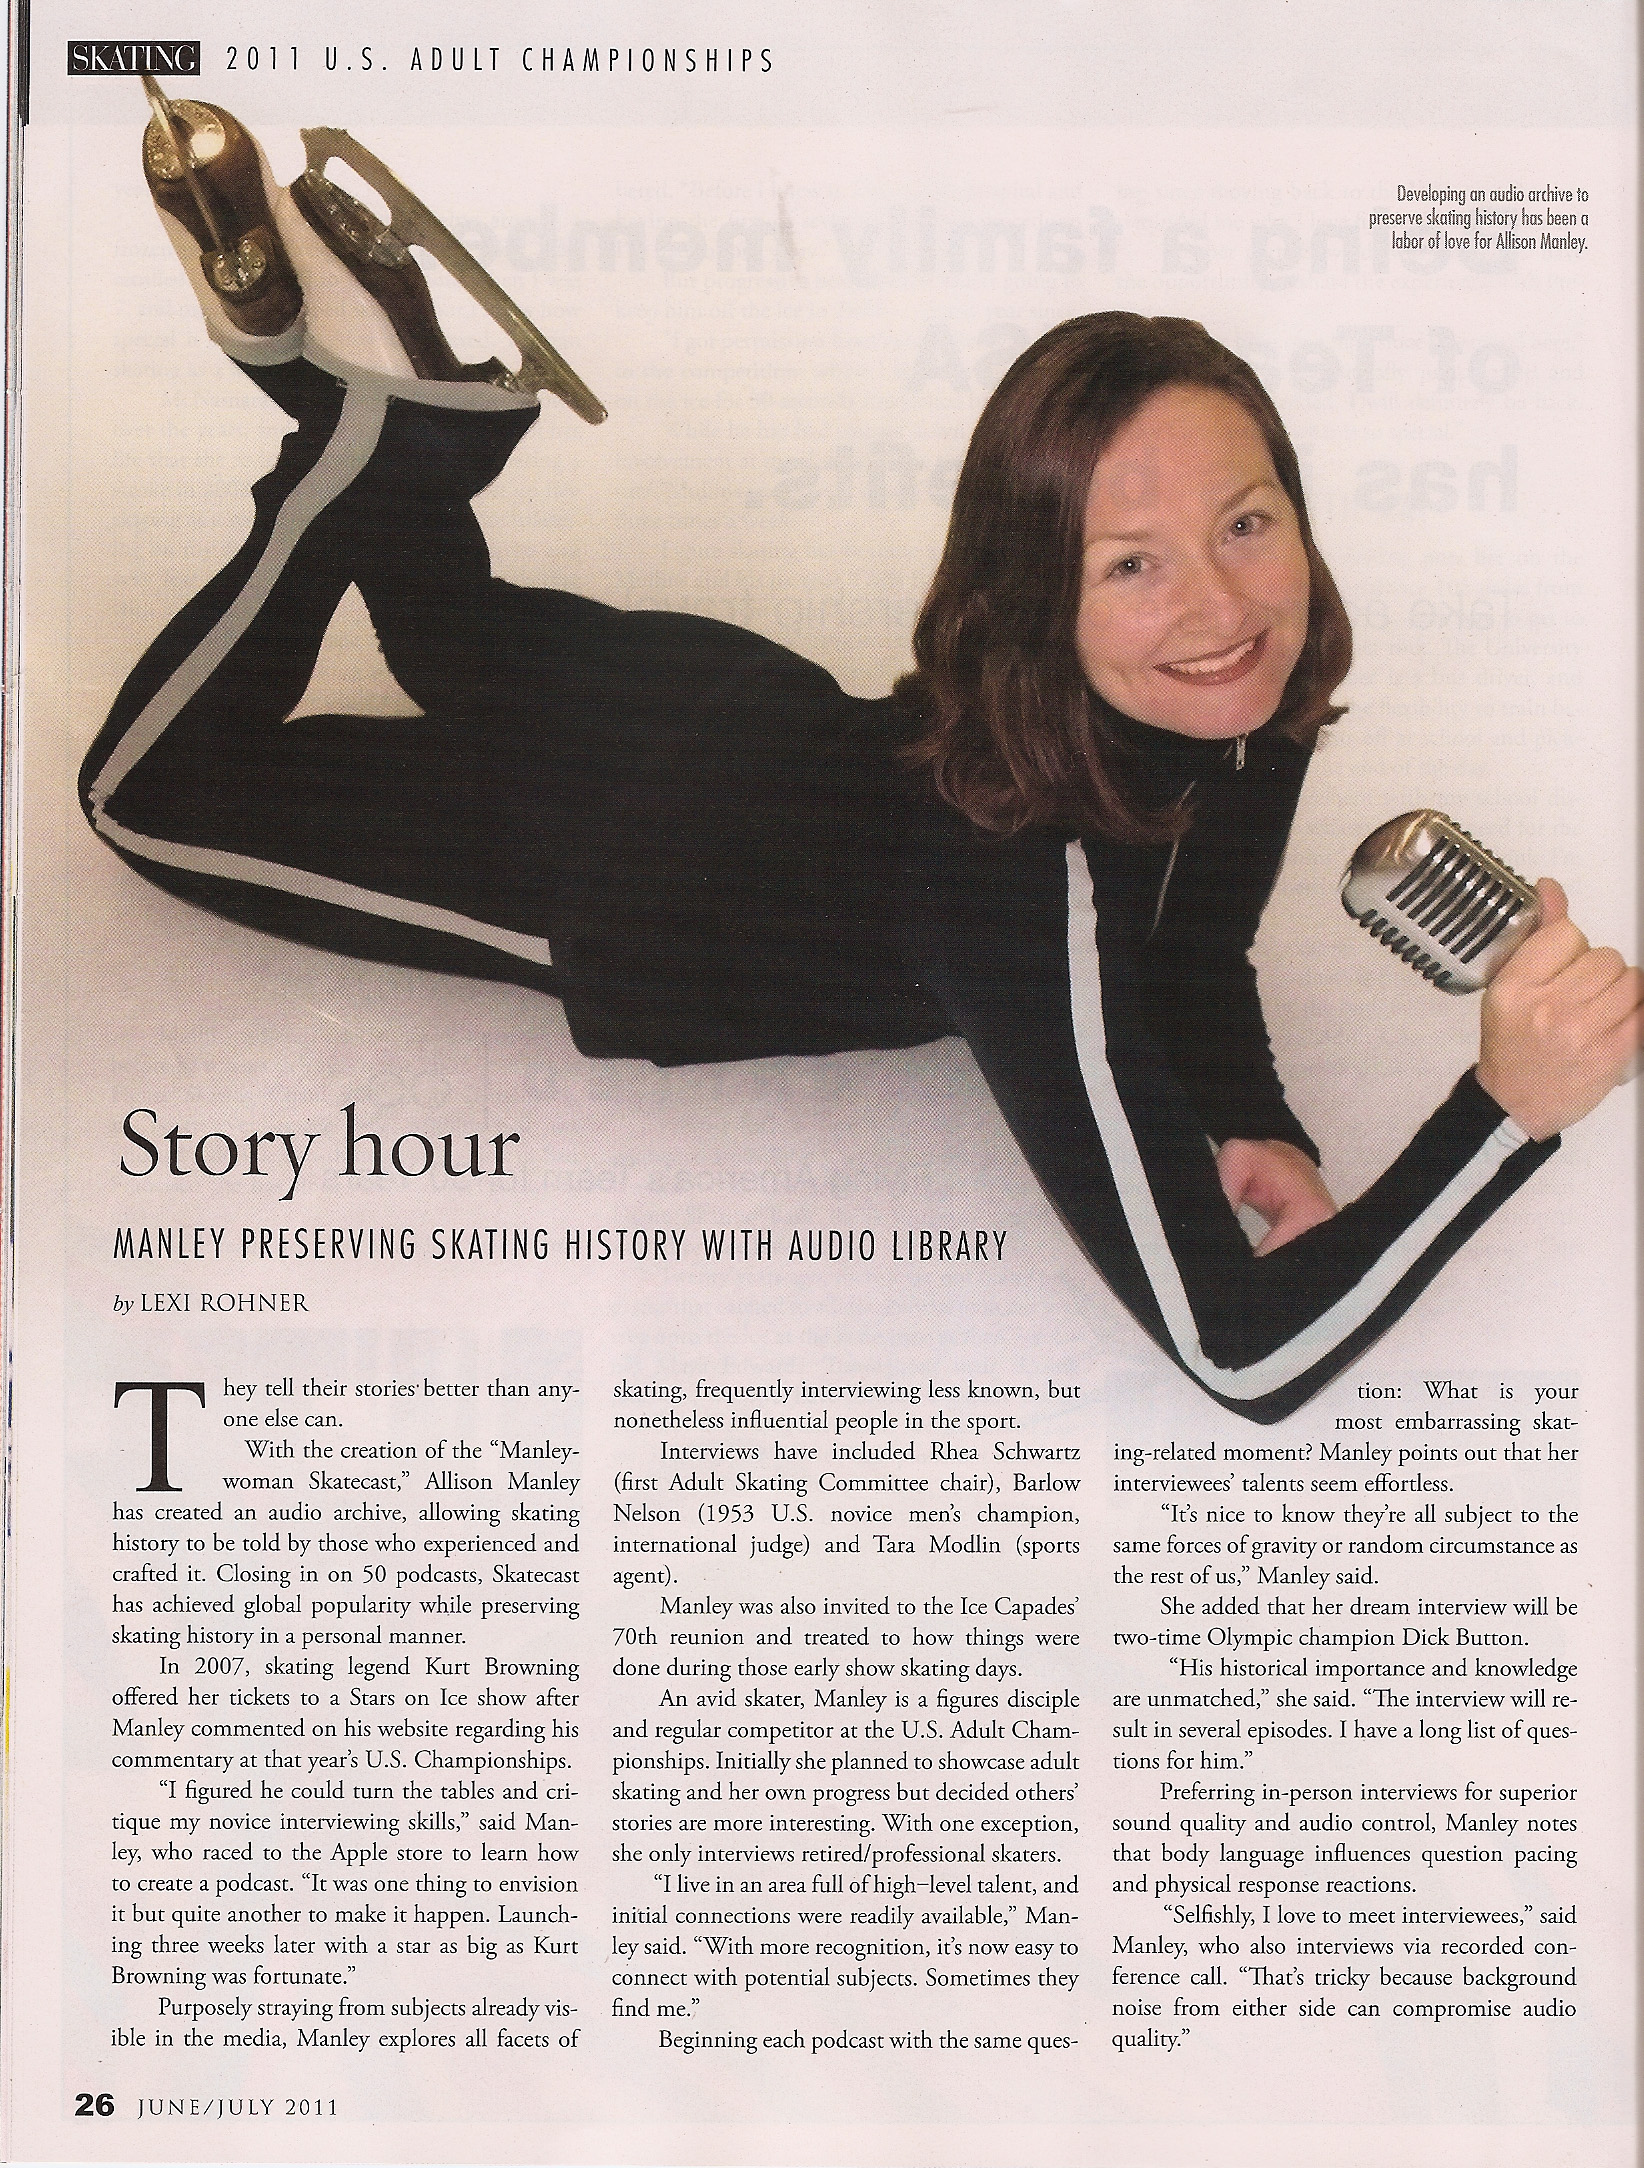 Image from 2011 Skating Magazine article about the Manleywoman Skatecast, a figure skating podcast